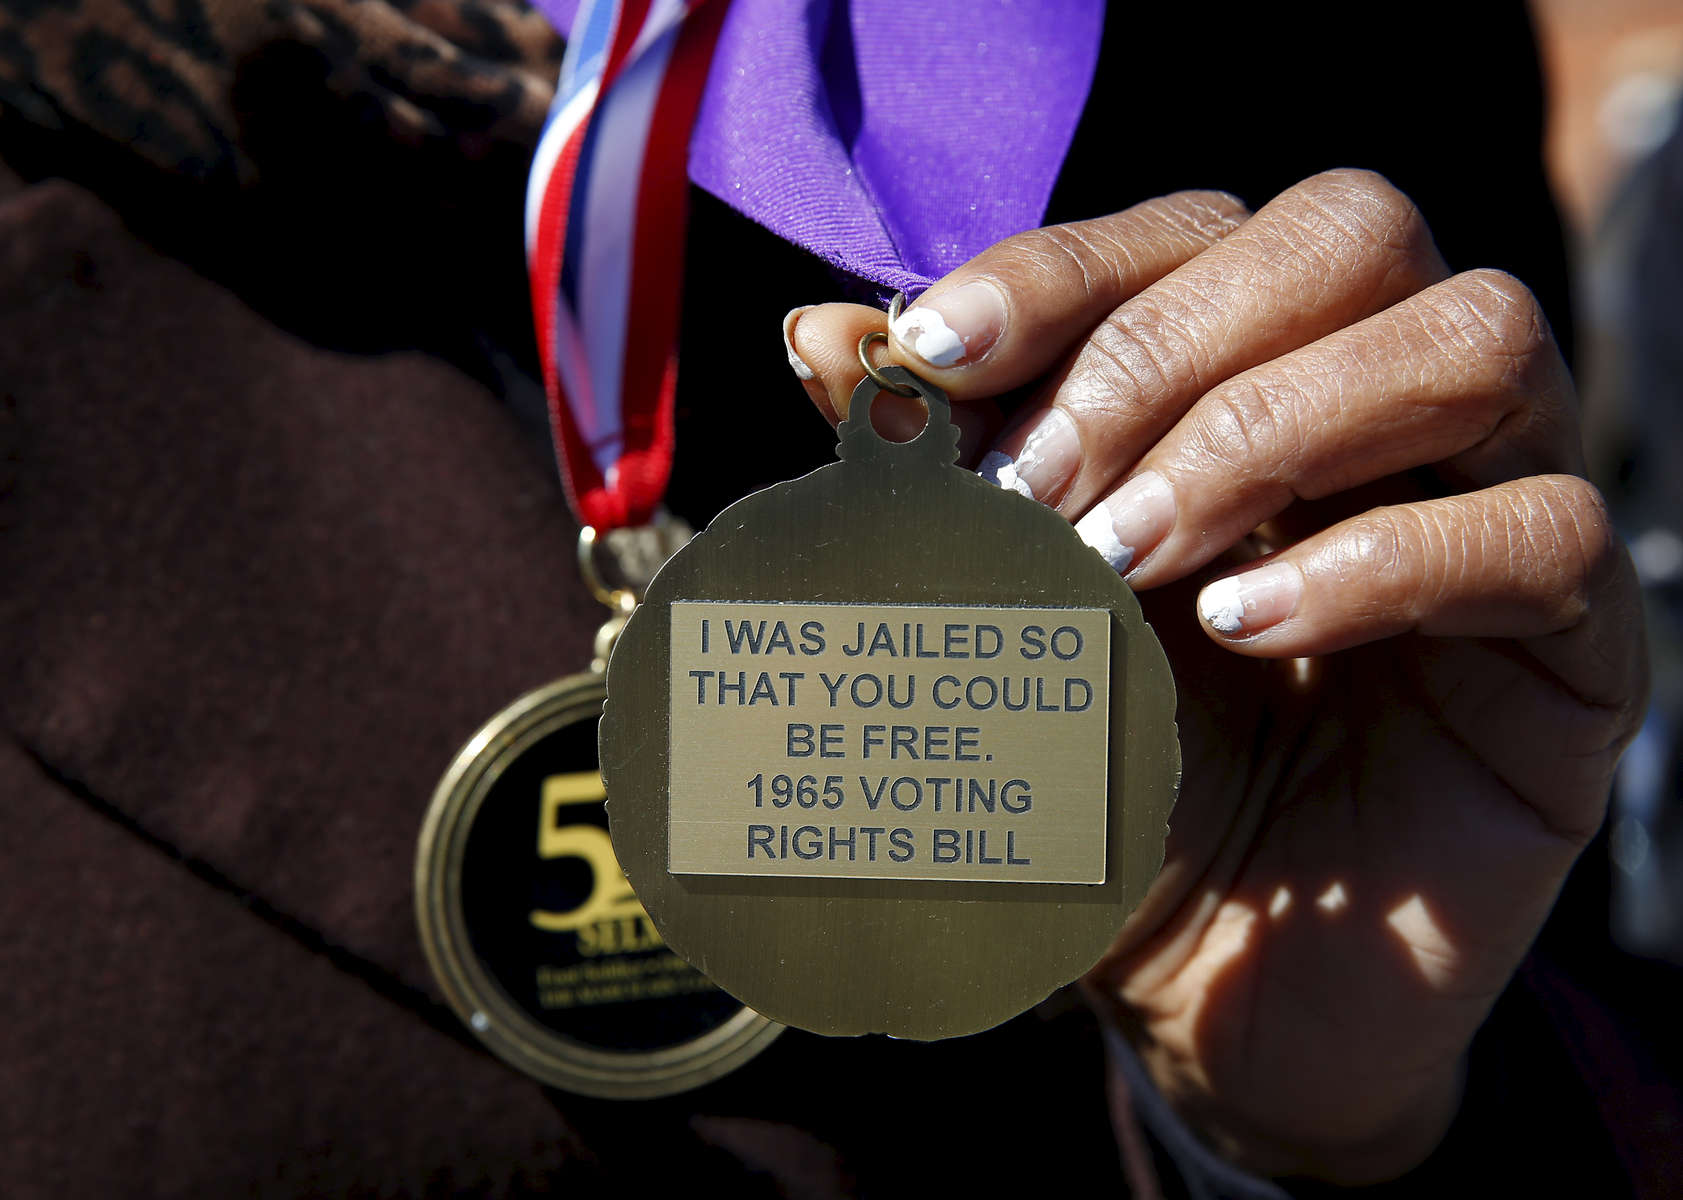 Selma, Alabama -- 3/07/2015-- Linda Hall Gilford of Selma who marched across the Edmund Pettus Bridge at the age of 16 and was beaten as a result shows off the back of a medal in Selma, Alabama March 7, 2015. Jessica Rinaldi/Globe StaffTopic: Reporter: